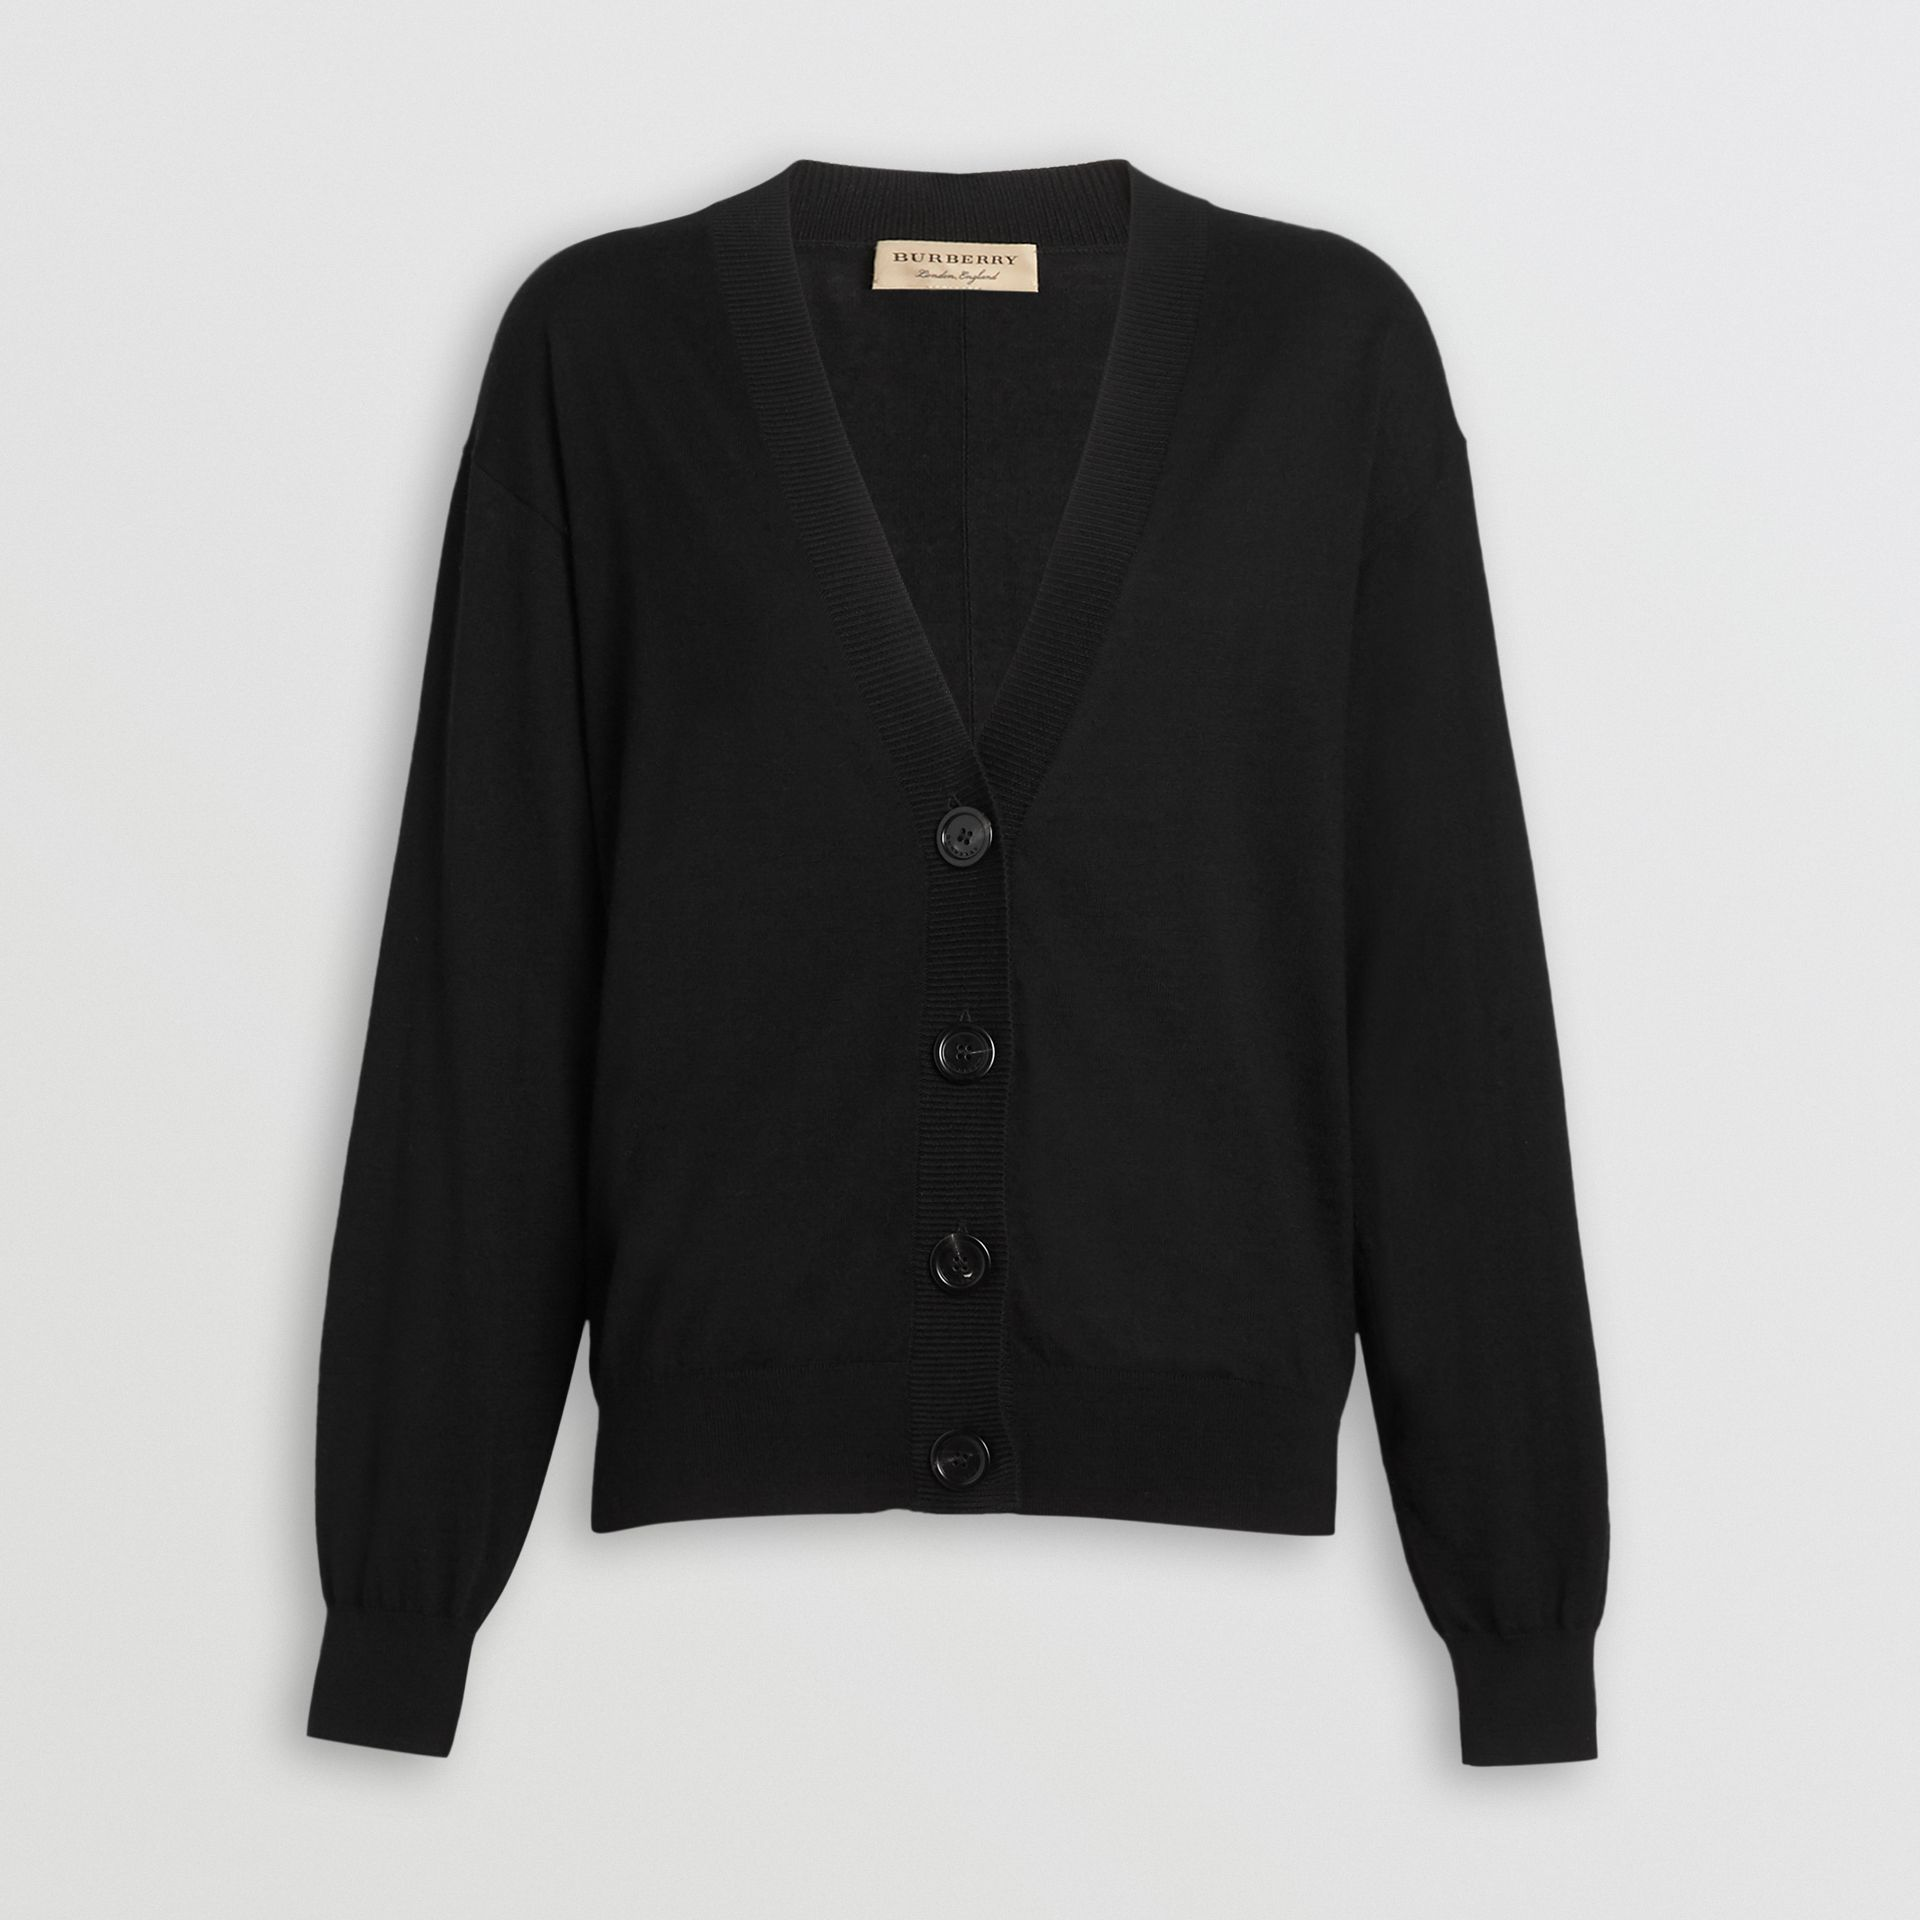 Vintage Check Detail Merino Wool Cardigan in Black - Women | Burberry Australia - gallery image 3